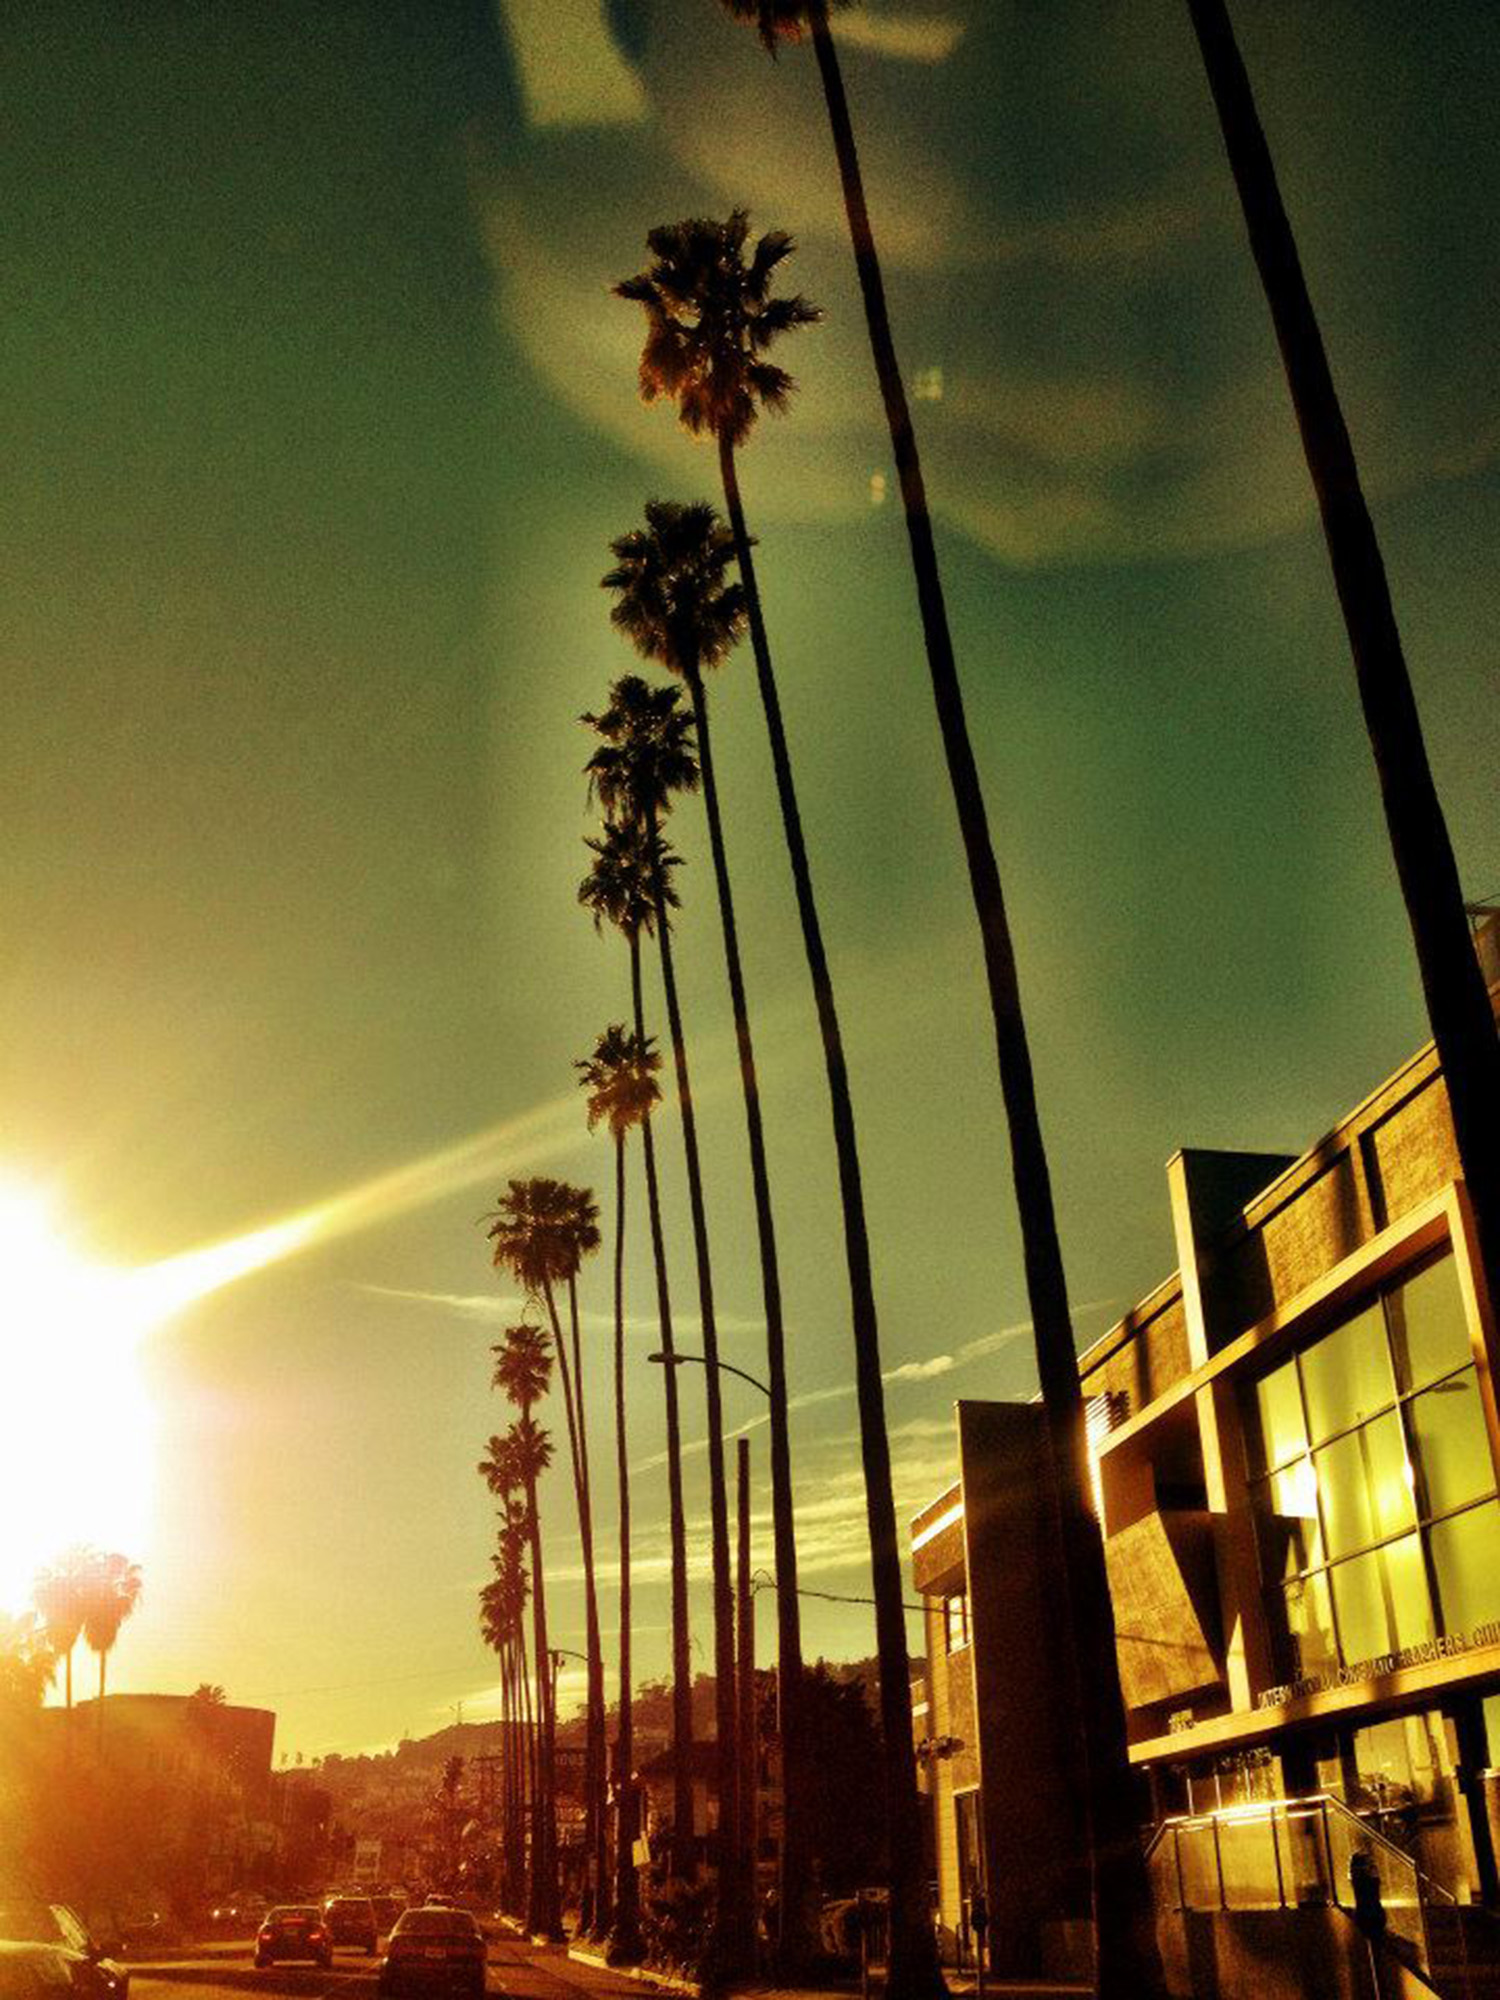 The tall palm trees along the streets of LA